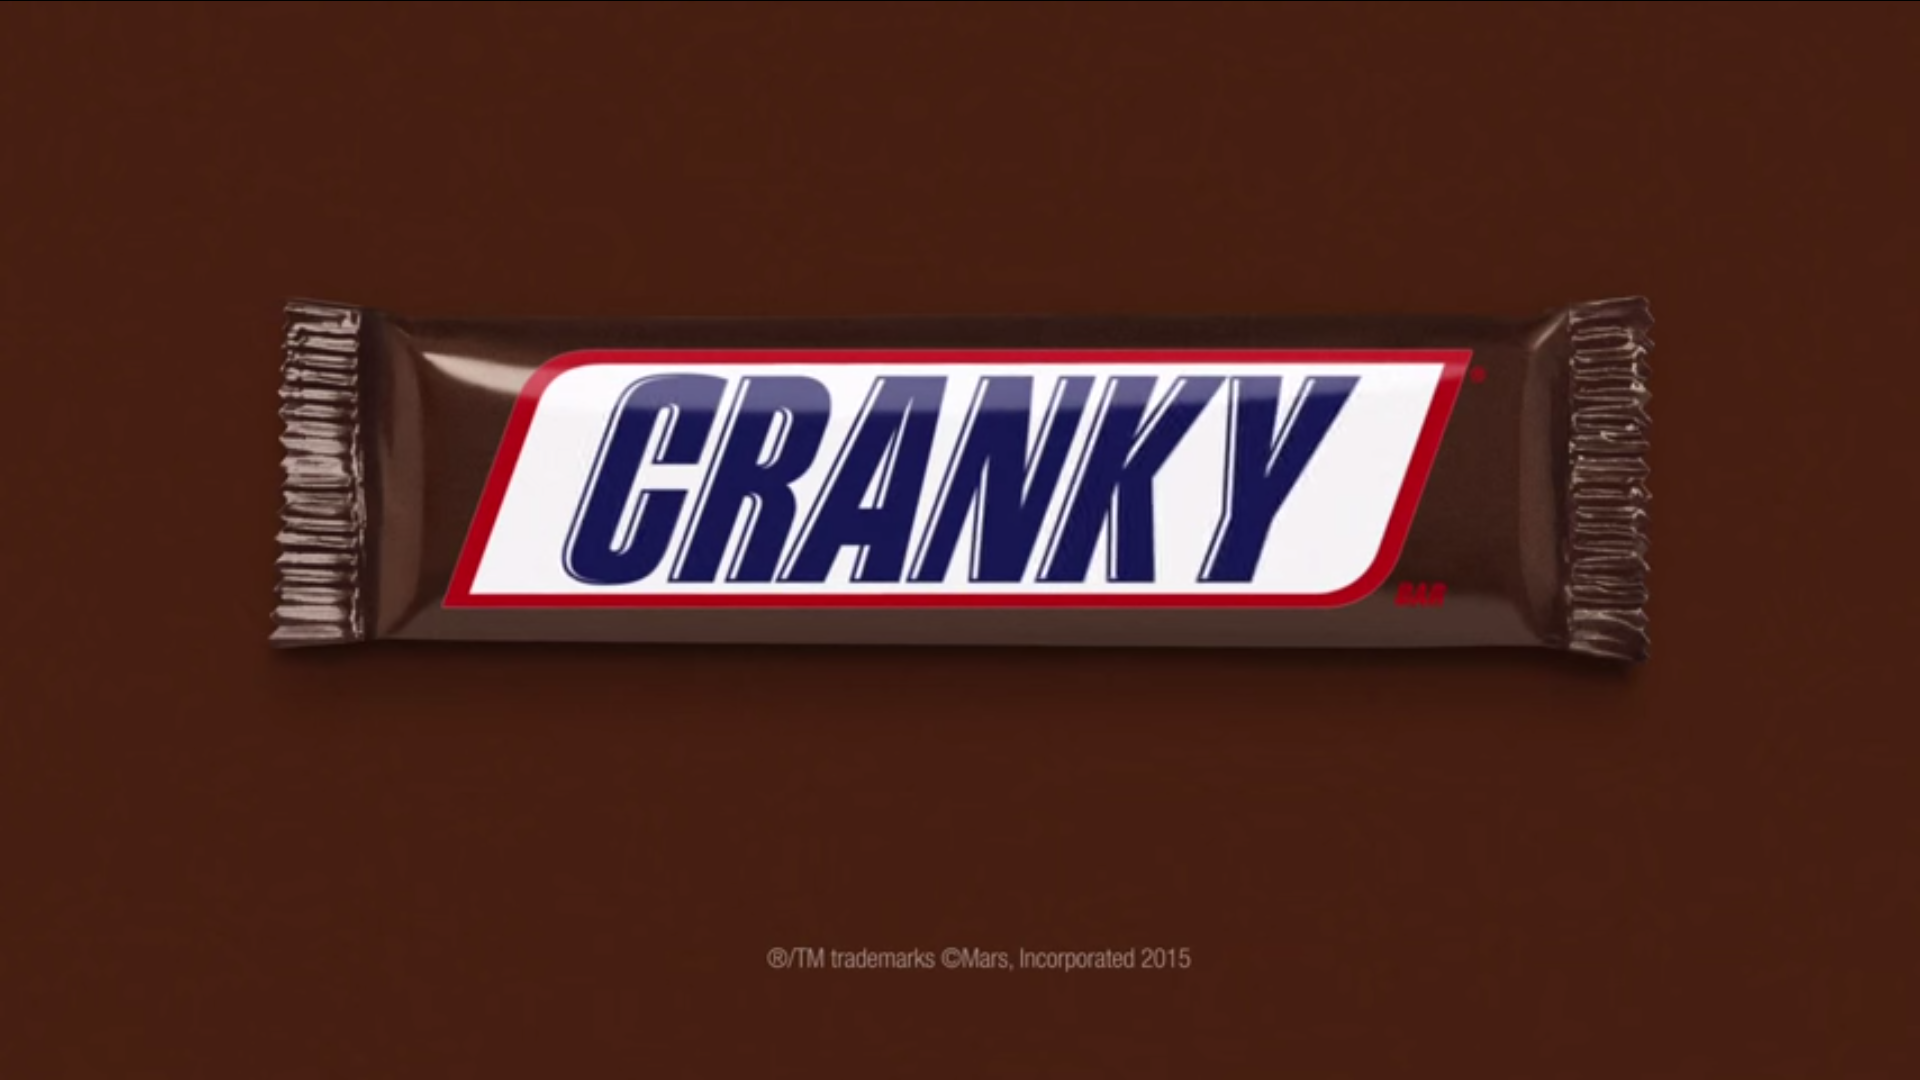 Snickers Granky